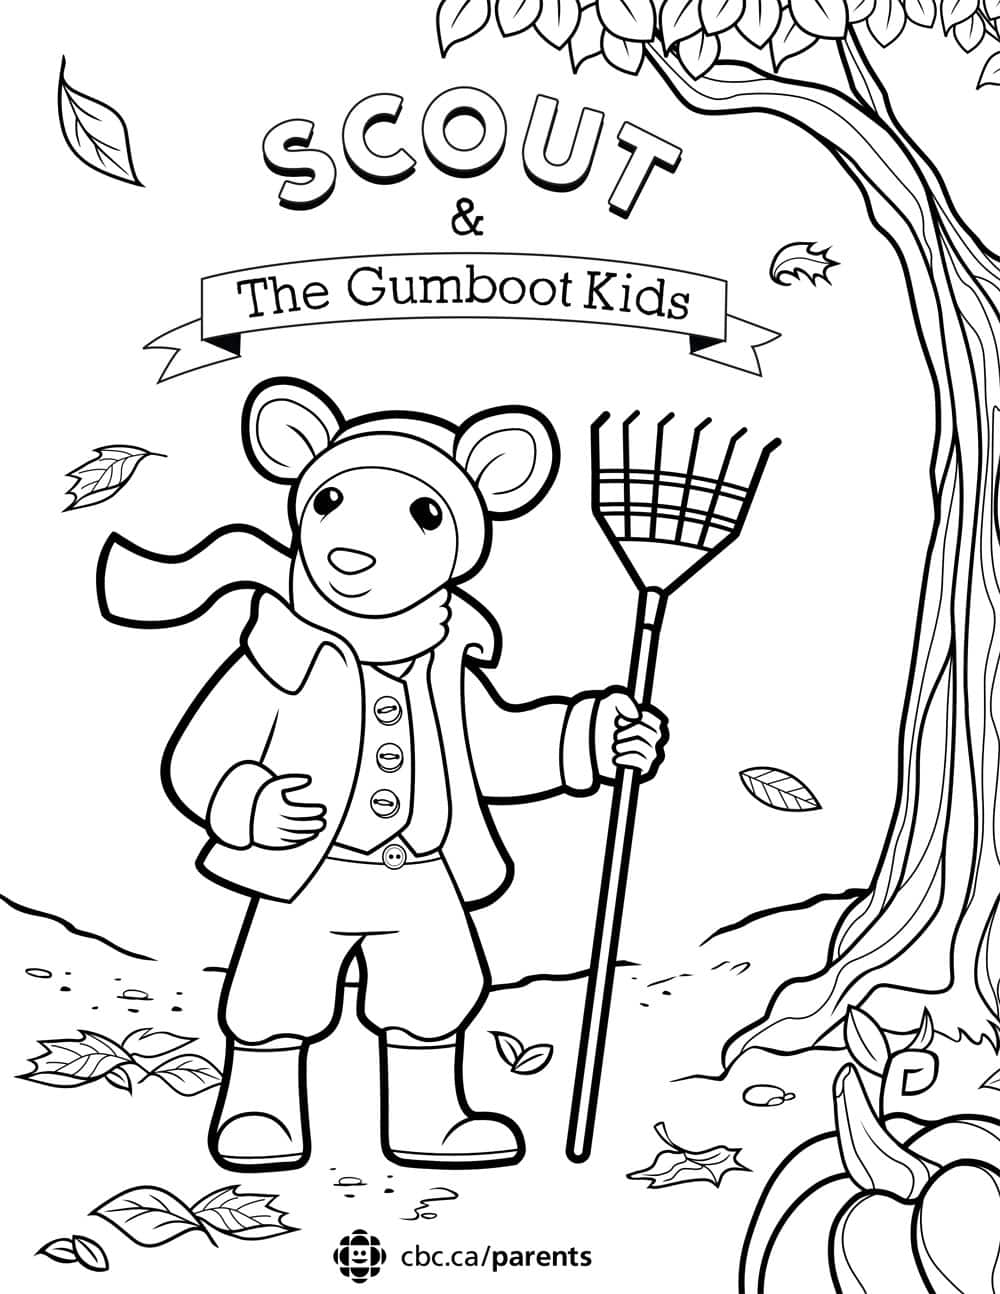 Colouring Together Why Colouring Is Great For Kids And